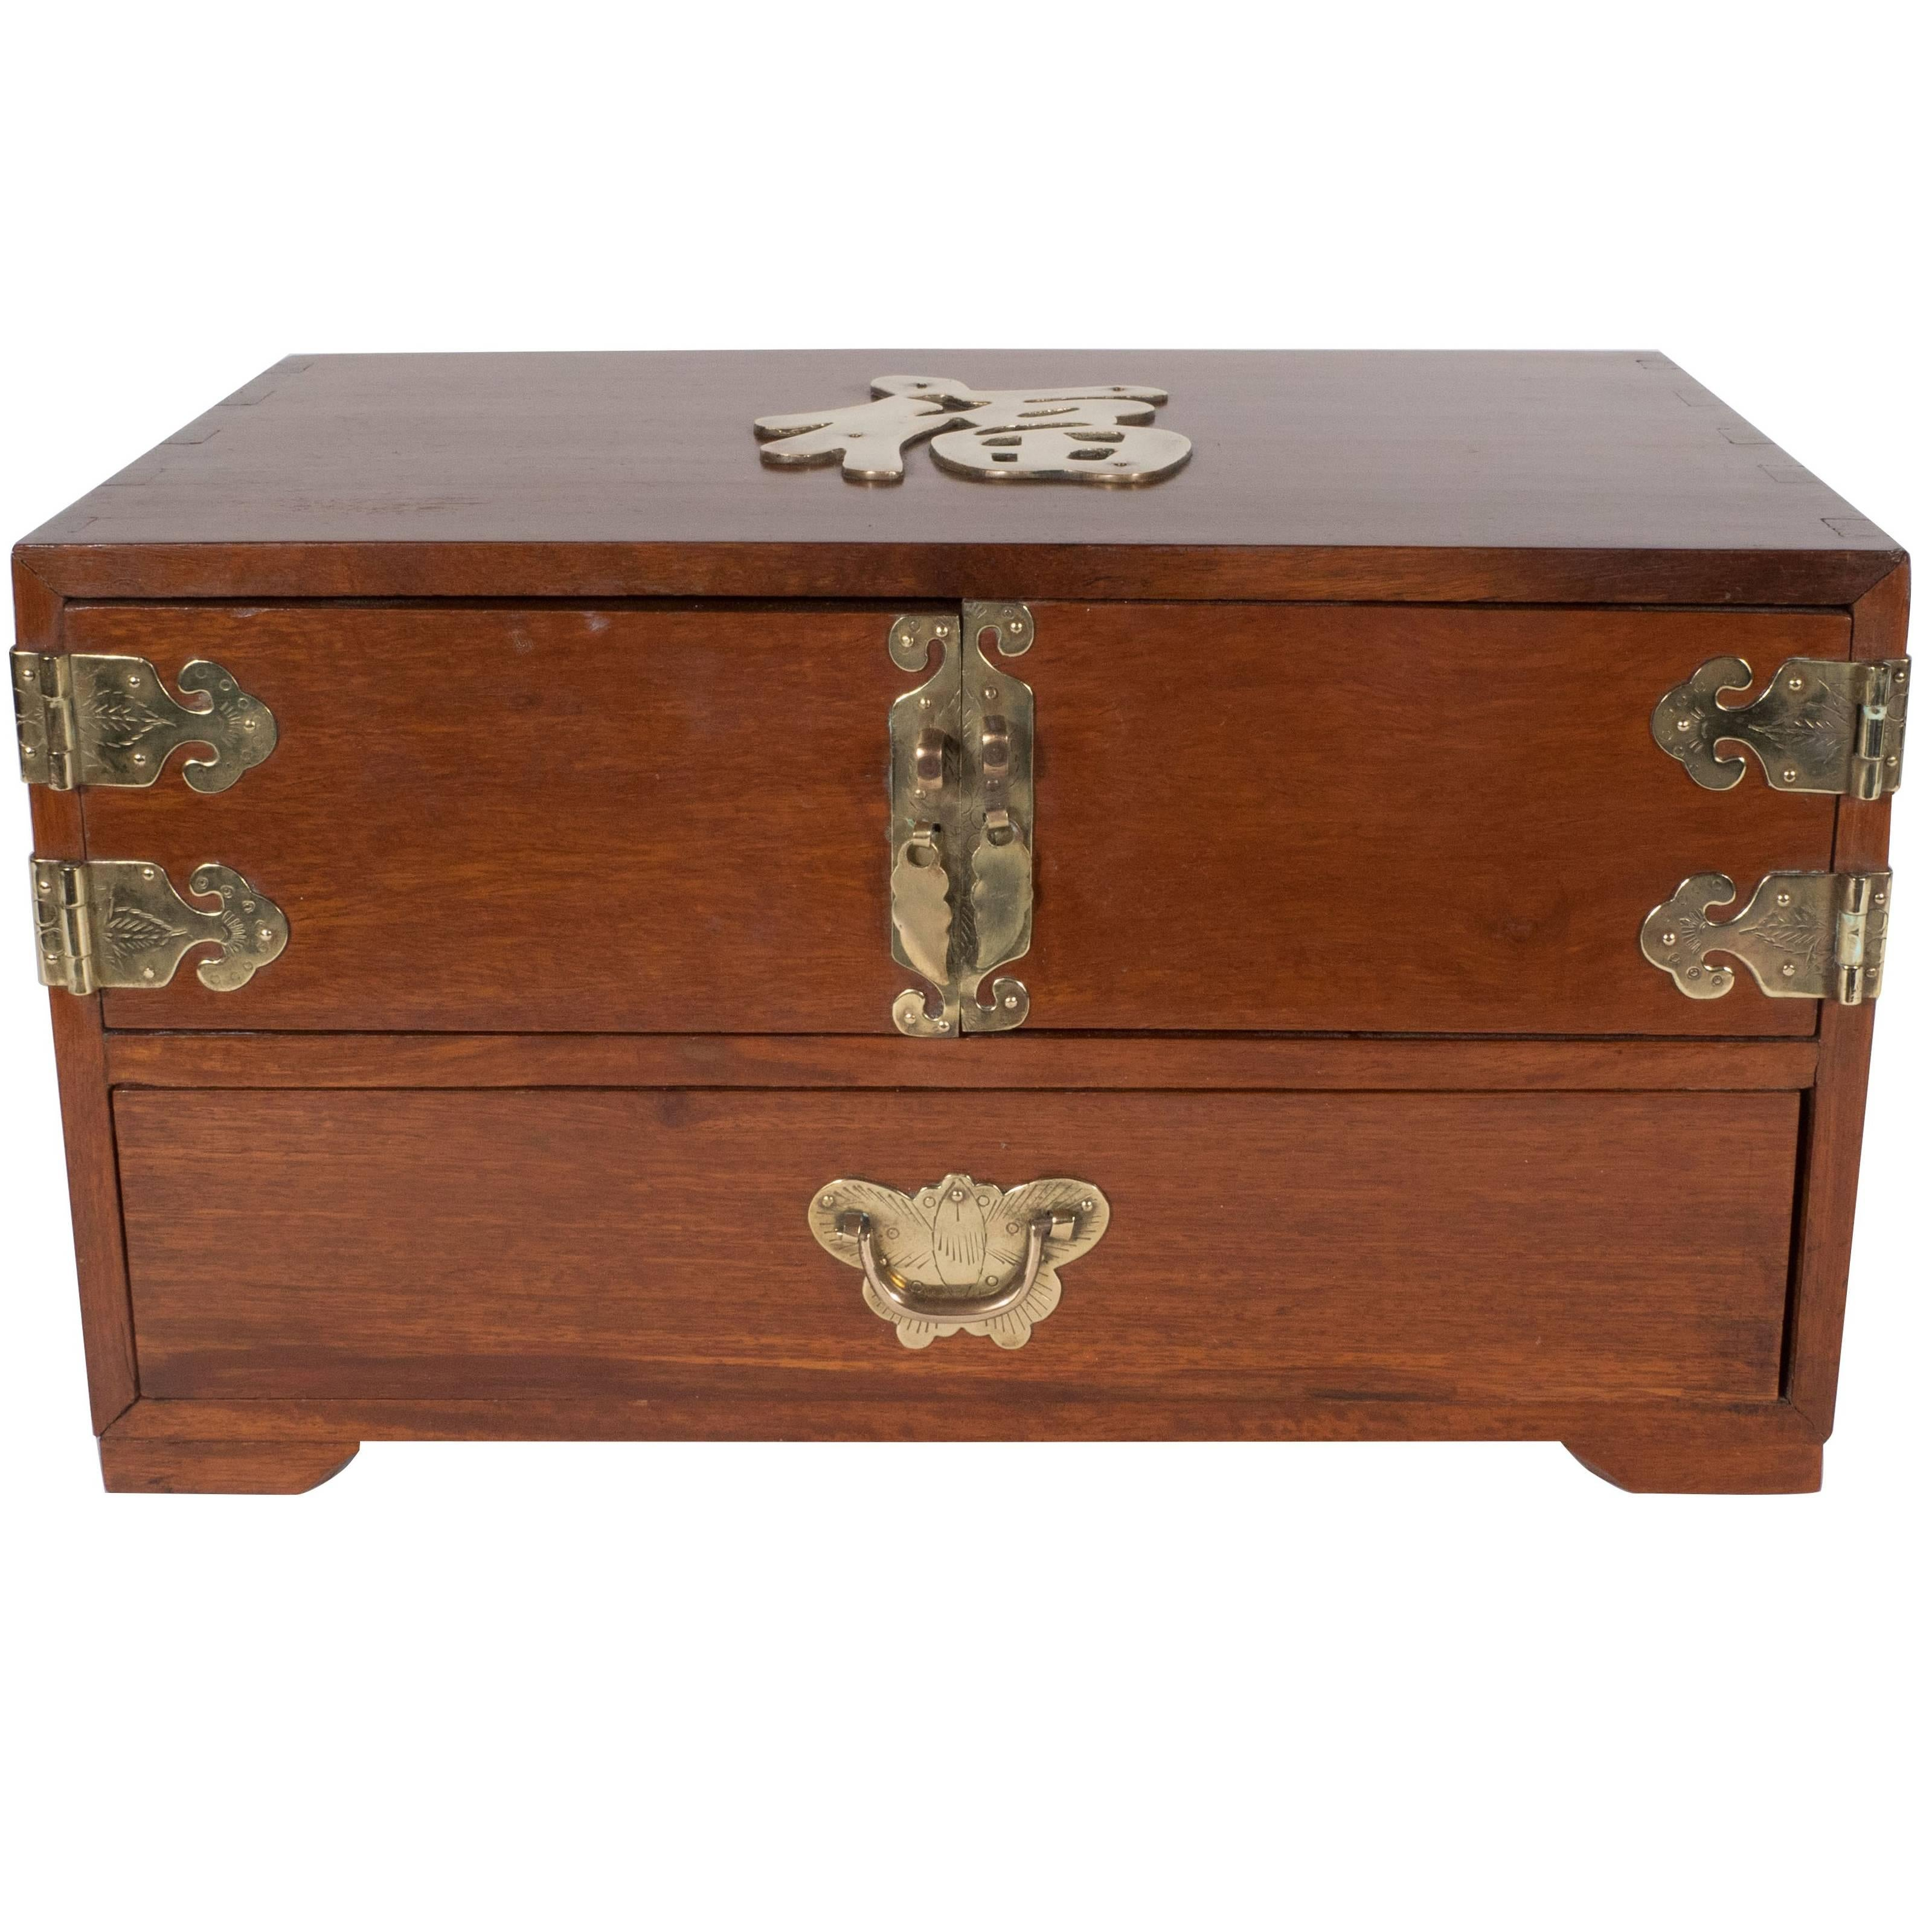 Mid century modern rosewood chinese jewelry box with brass hardware at 1stdibs